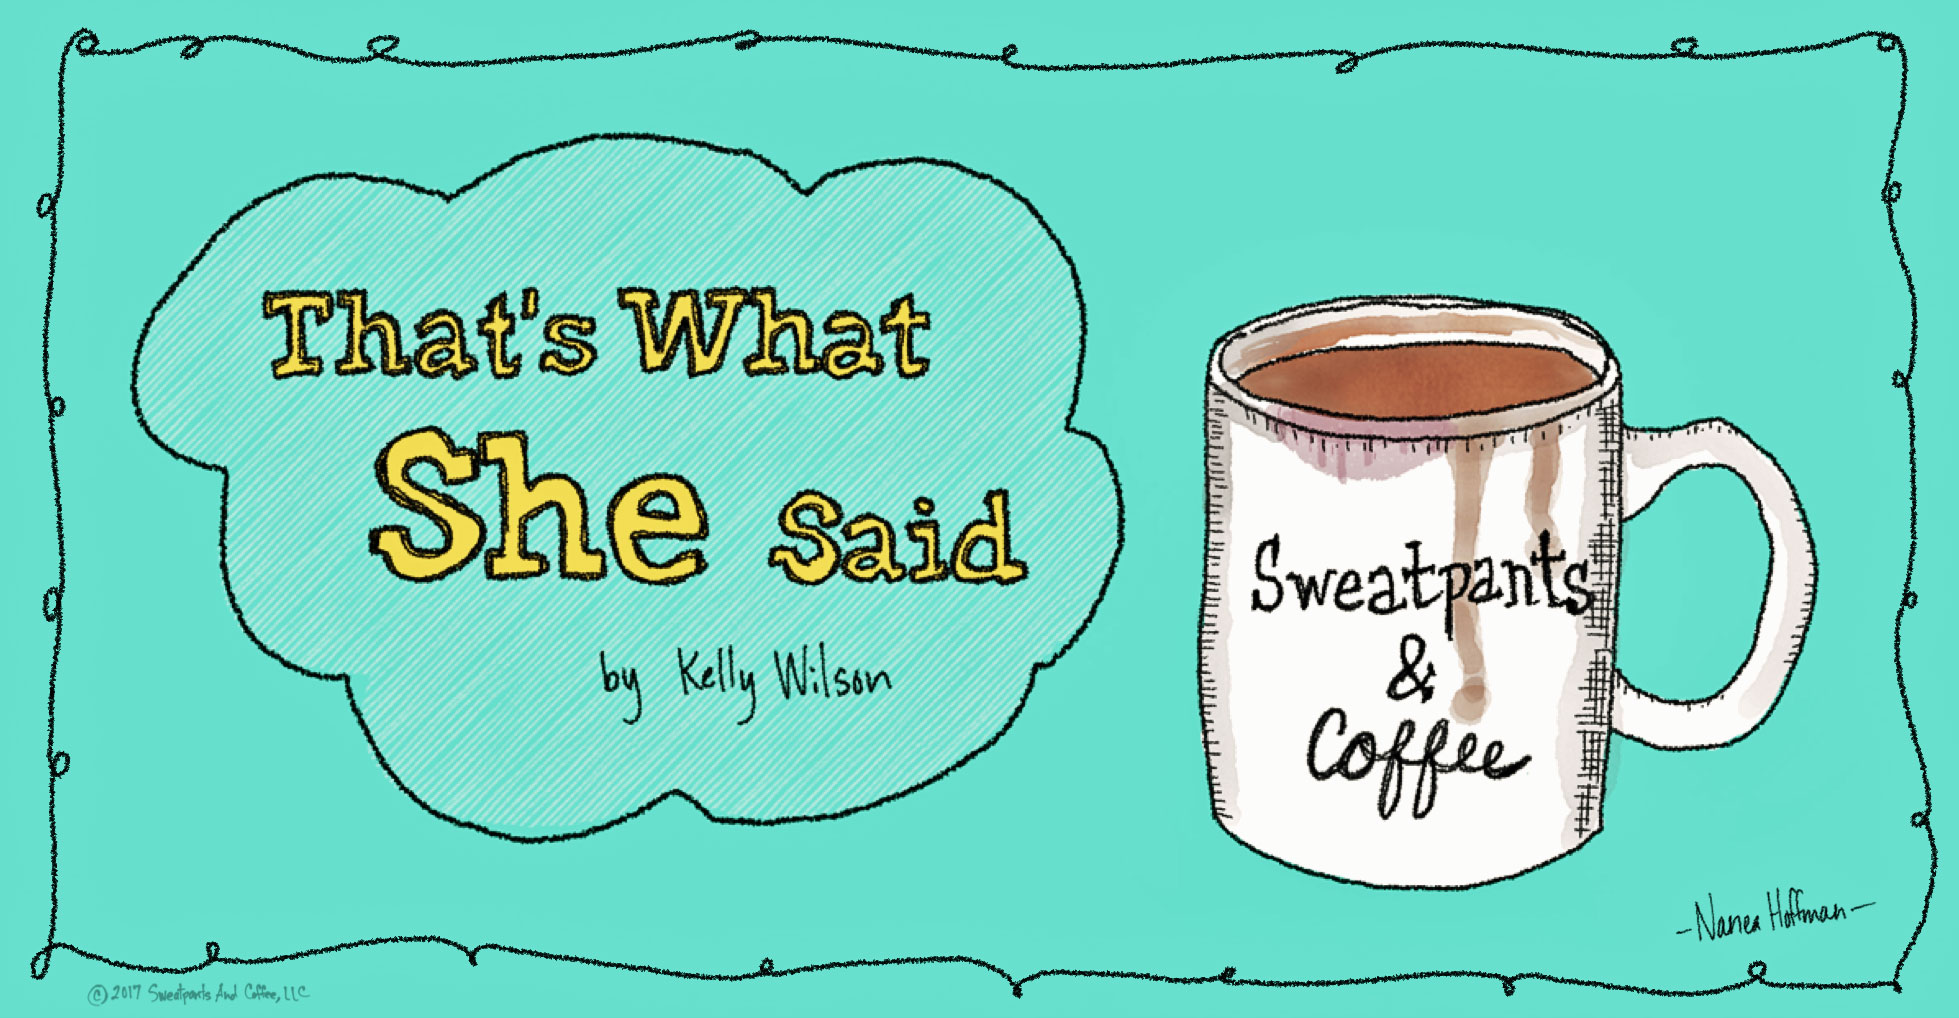 Kelly-Wilson-That's-What-She-Said-banner